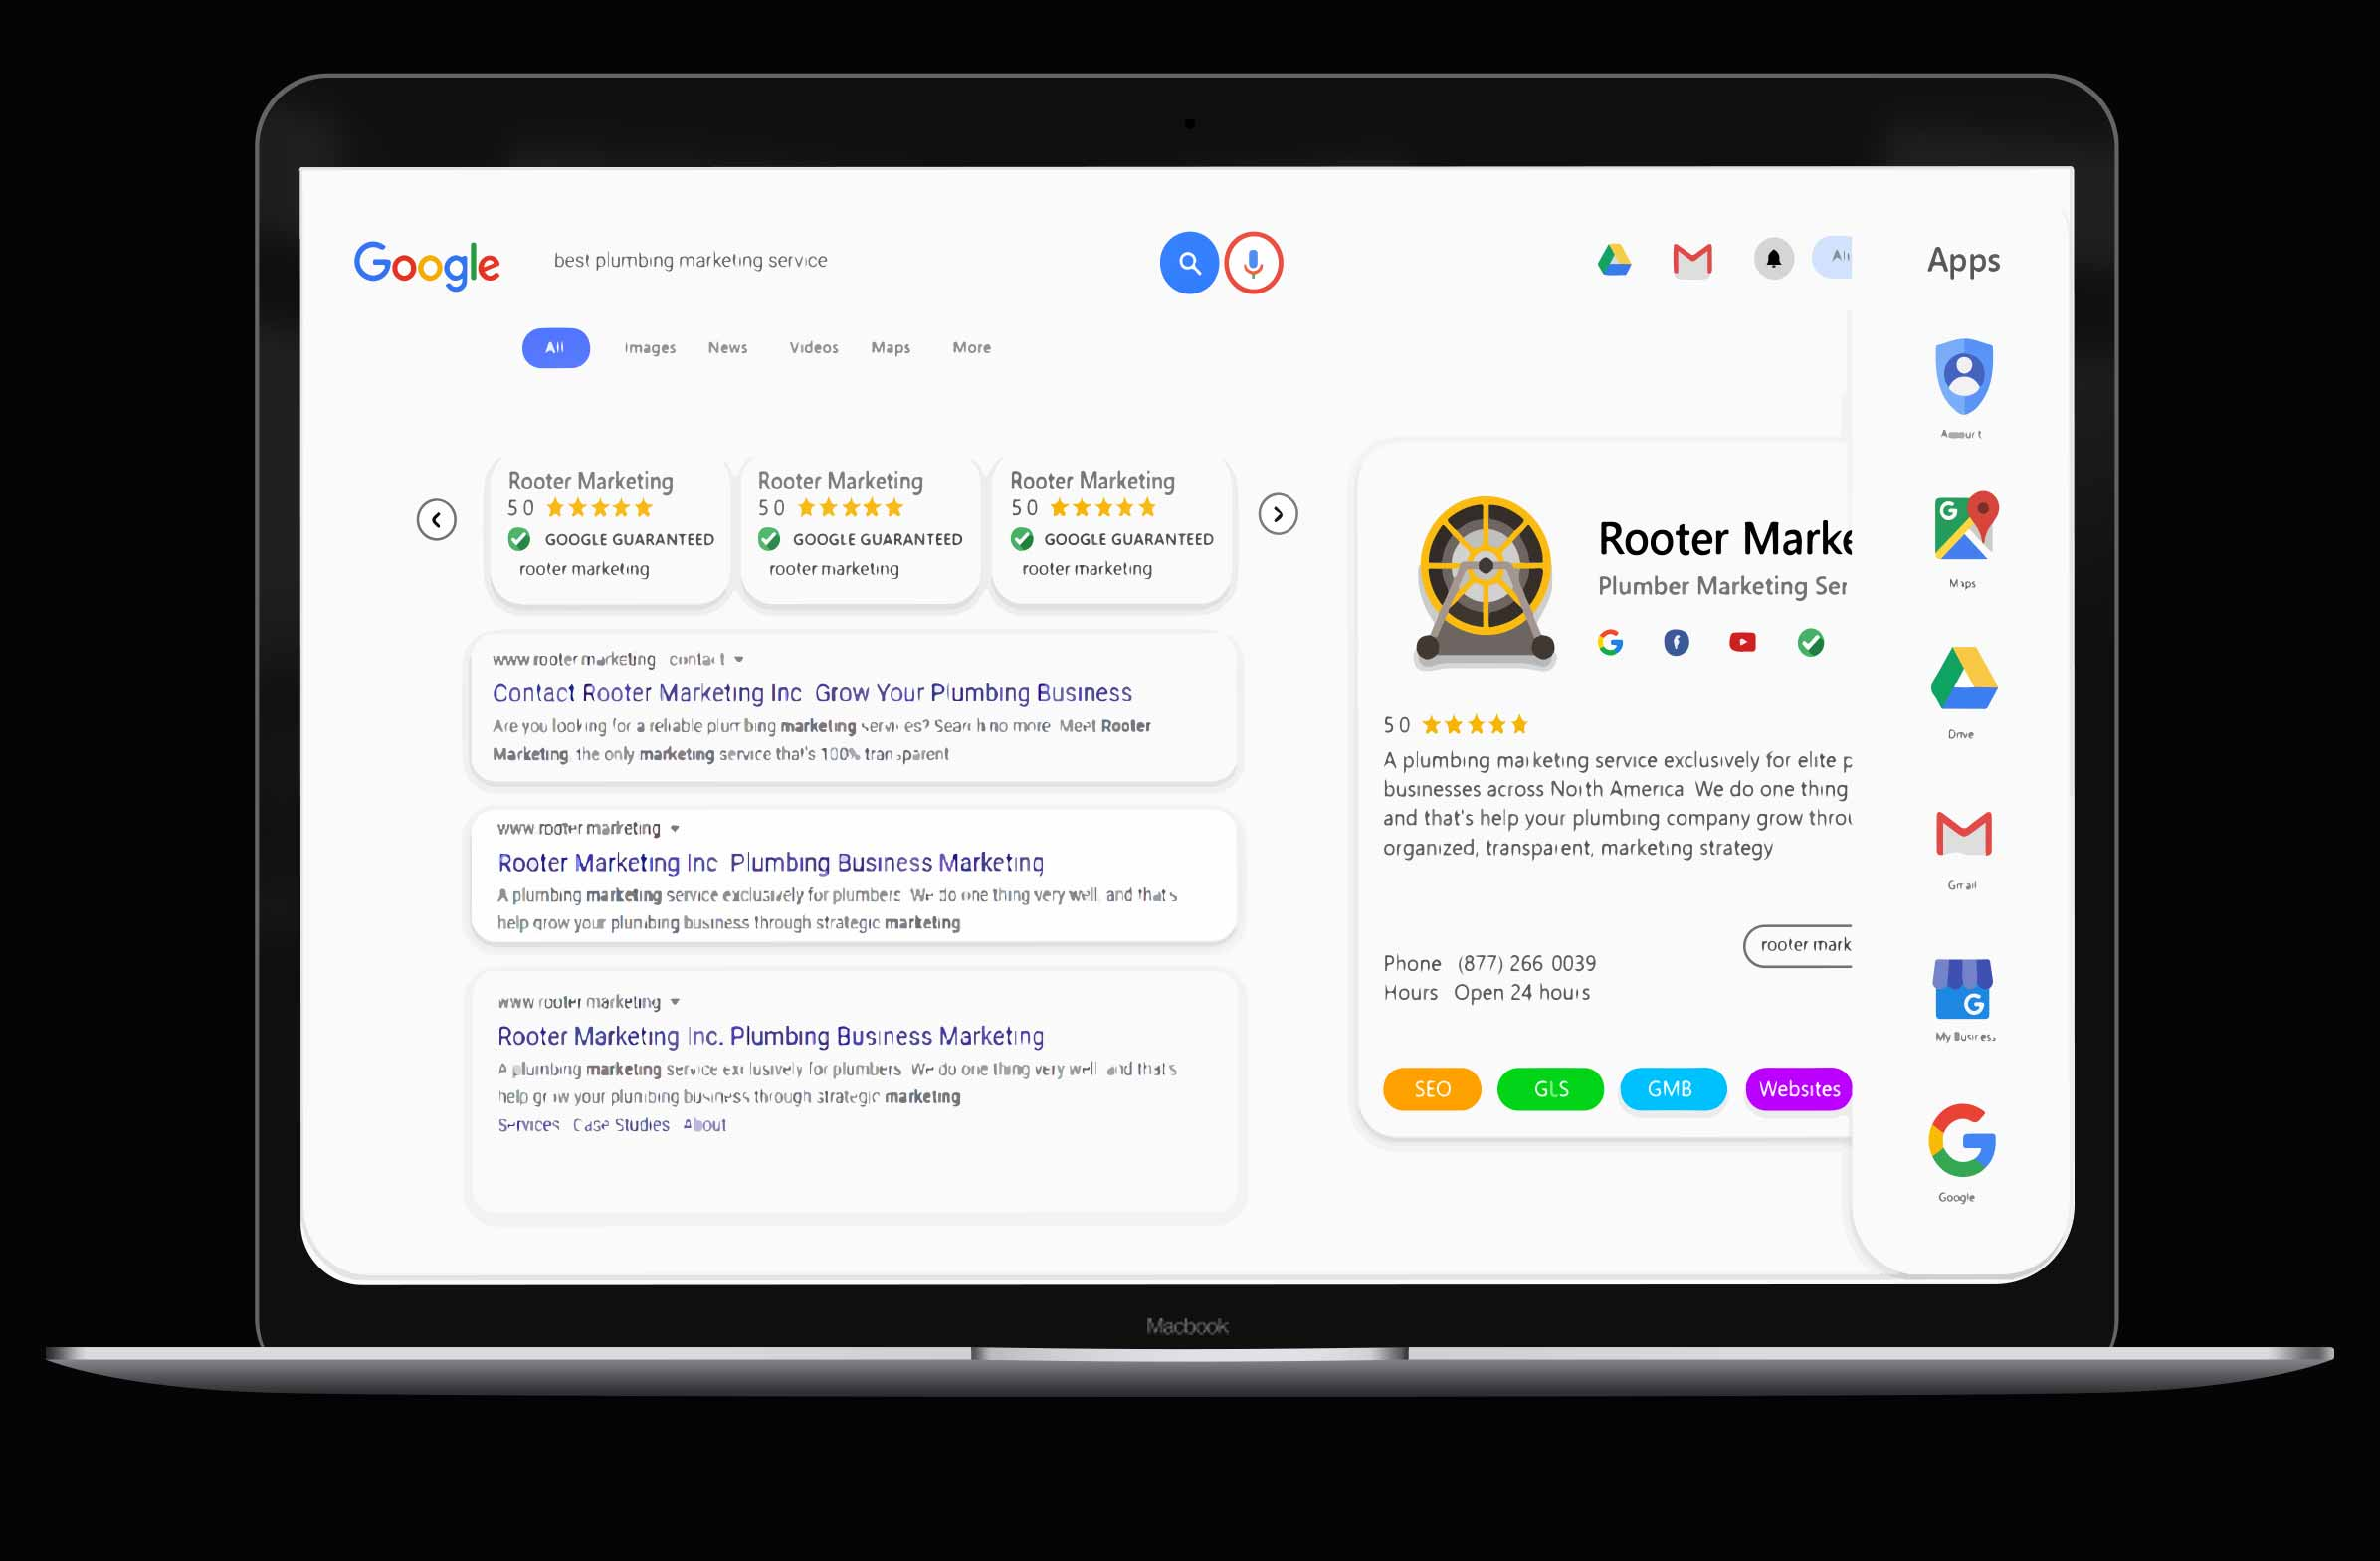 Rooter Marketing helps plumbing companies optimize their online presence and increase customer traffic to their plumbing website.